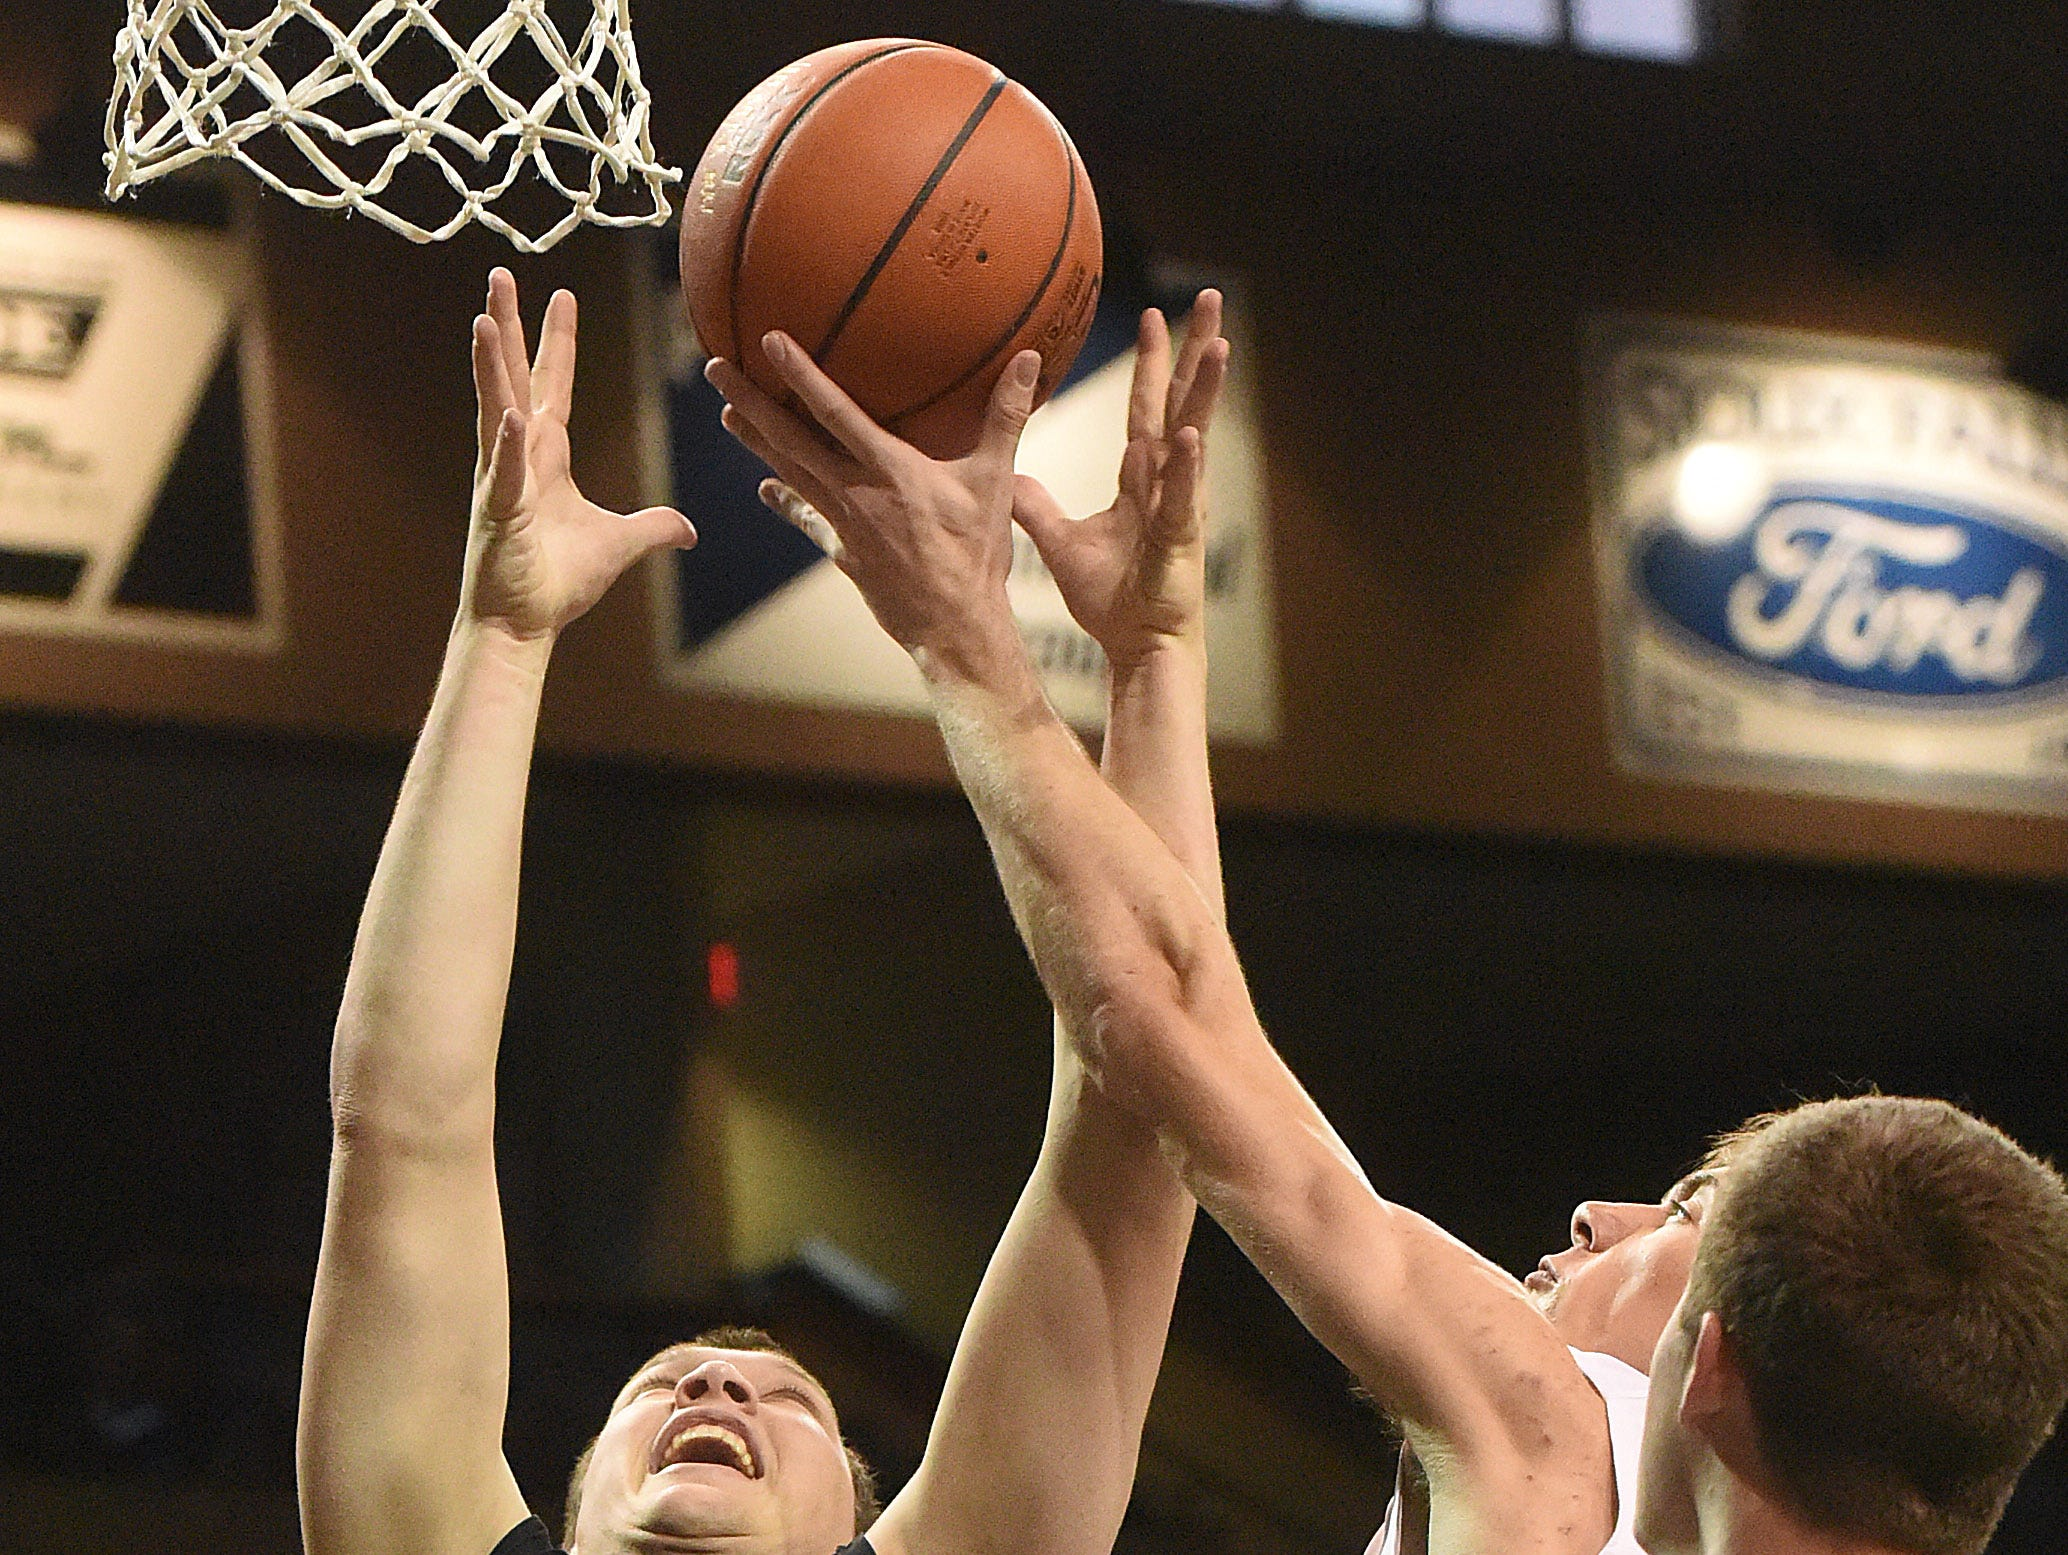 The Blue Team's Jacob Hinker (15) goes up for a shot while the White Team's Ethan Kranhold rebounds the ball during the Argus Leader/Sanford Pentagon First Five All-Star Game on Sunday, April 10, 2016, at the Sanford Pentagon in Sioux Falls.